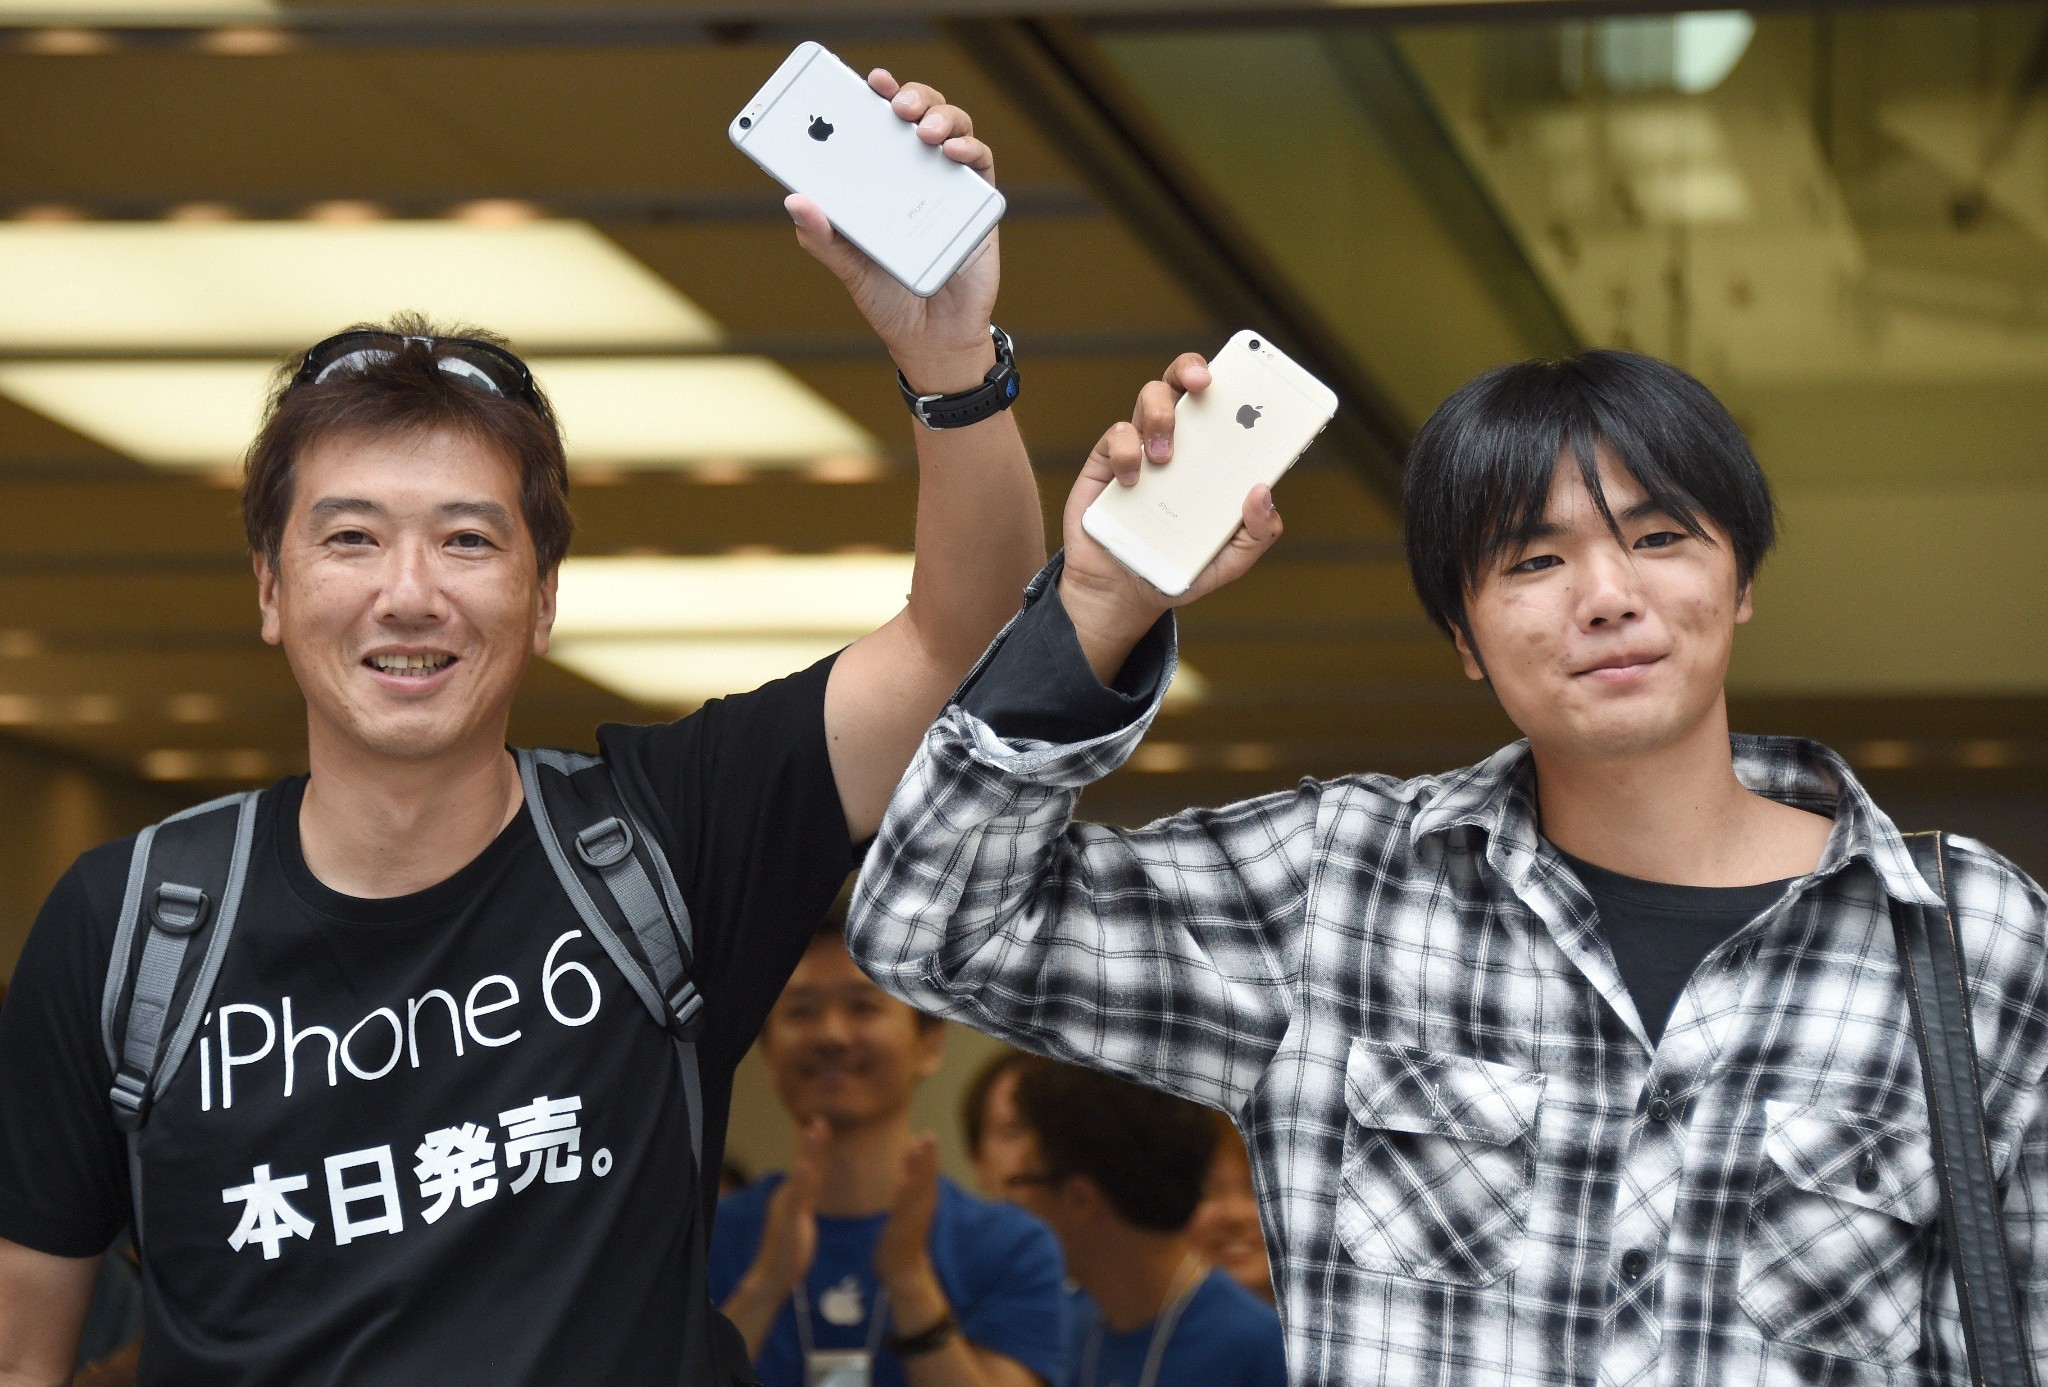 Apple iPhones outsell Samsung smartphones in last quarter of 2014